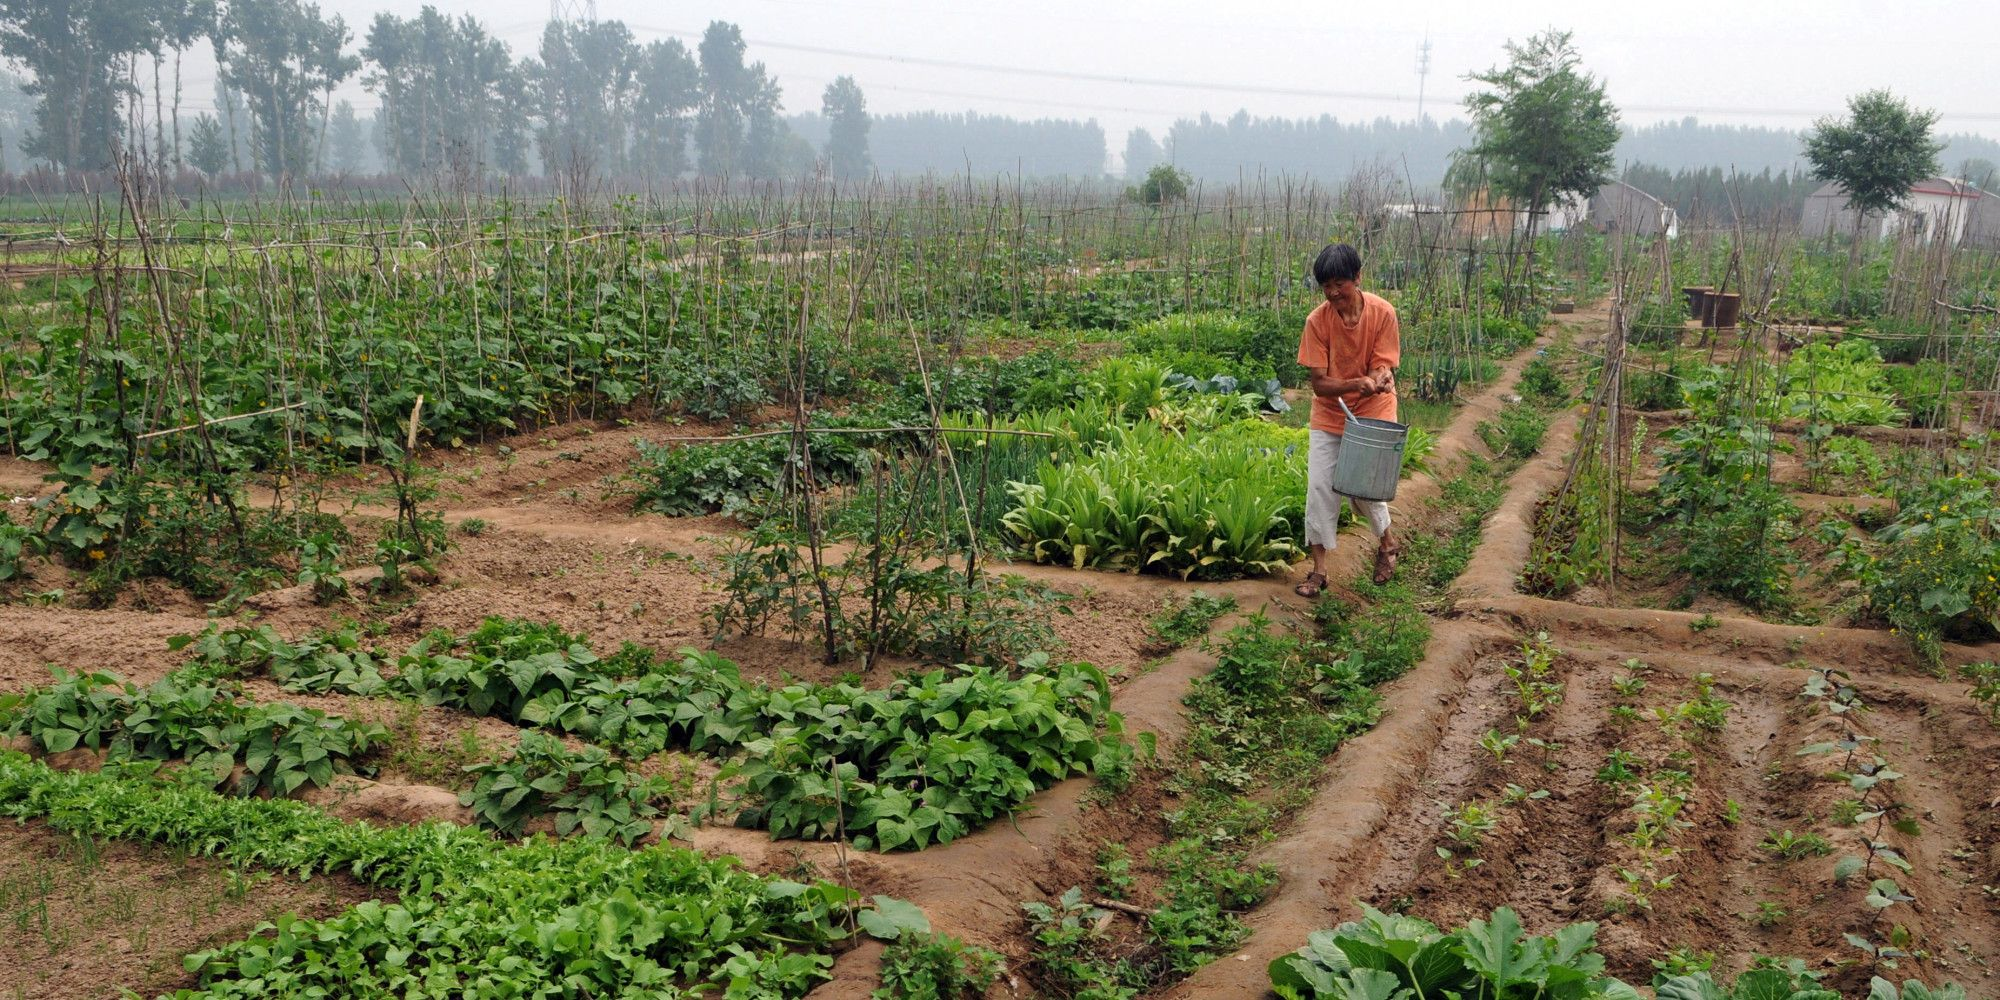 UN Report Says SmallScale Organic Farming Only Way To